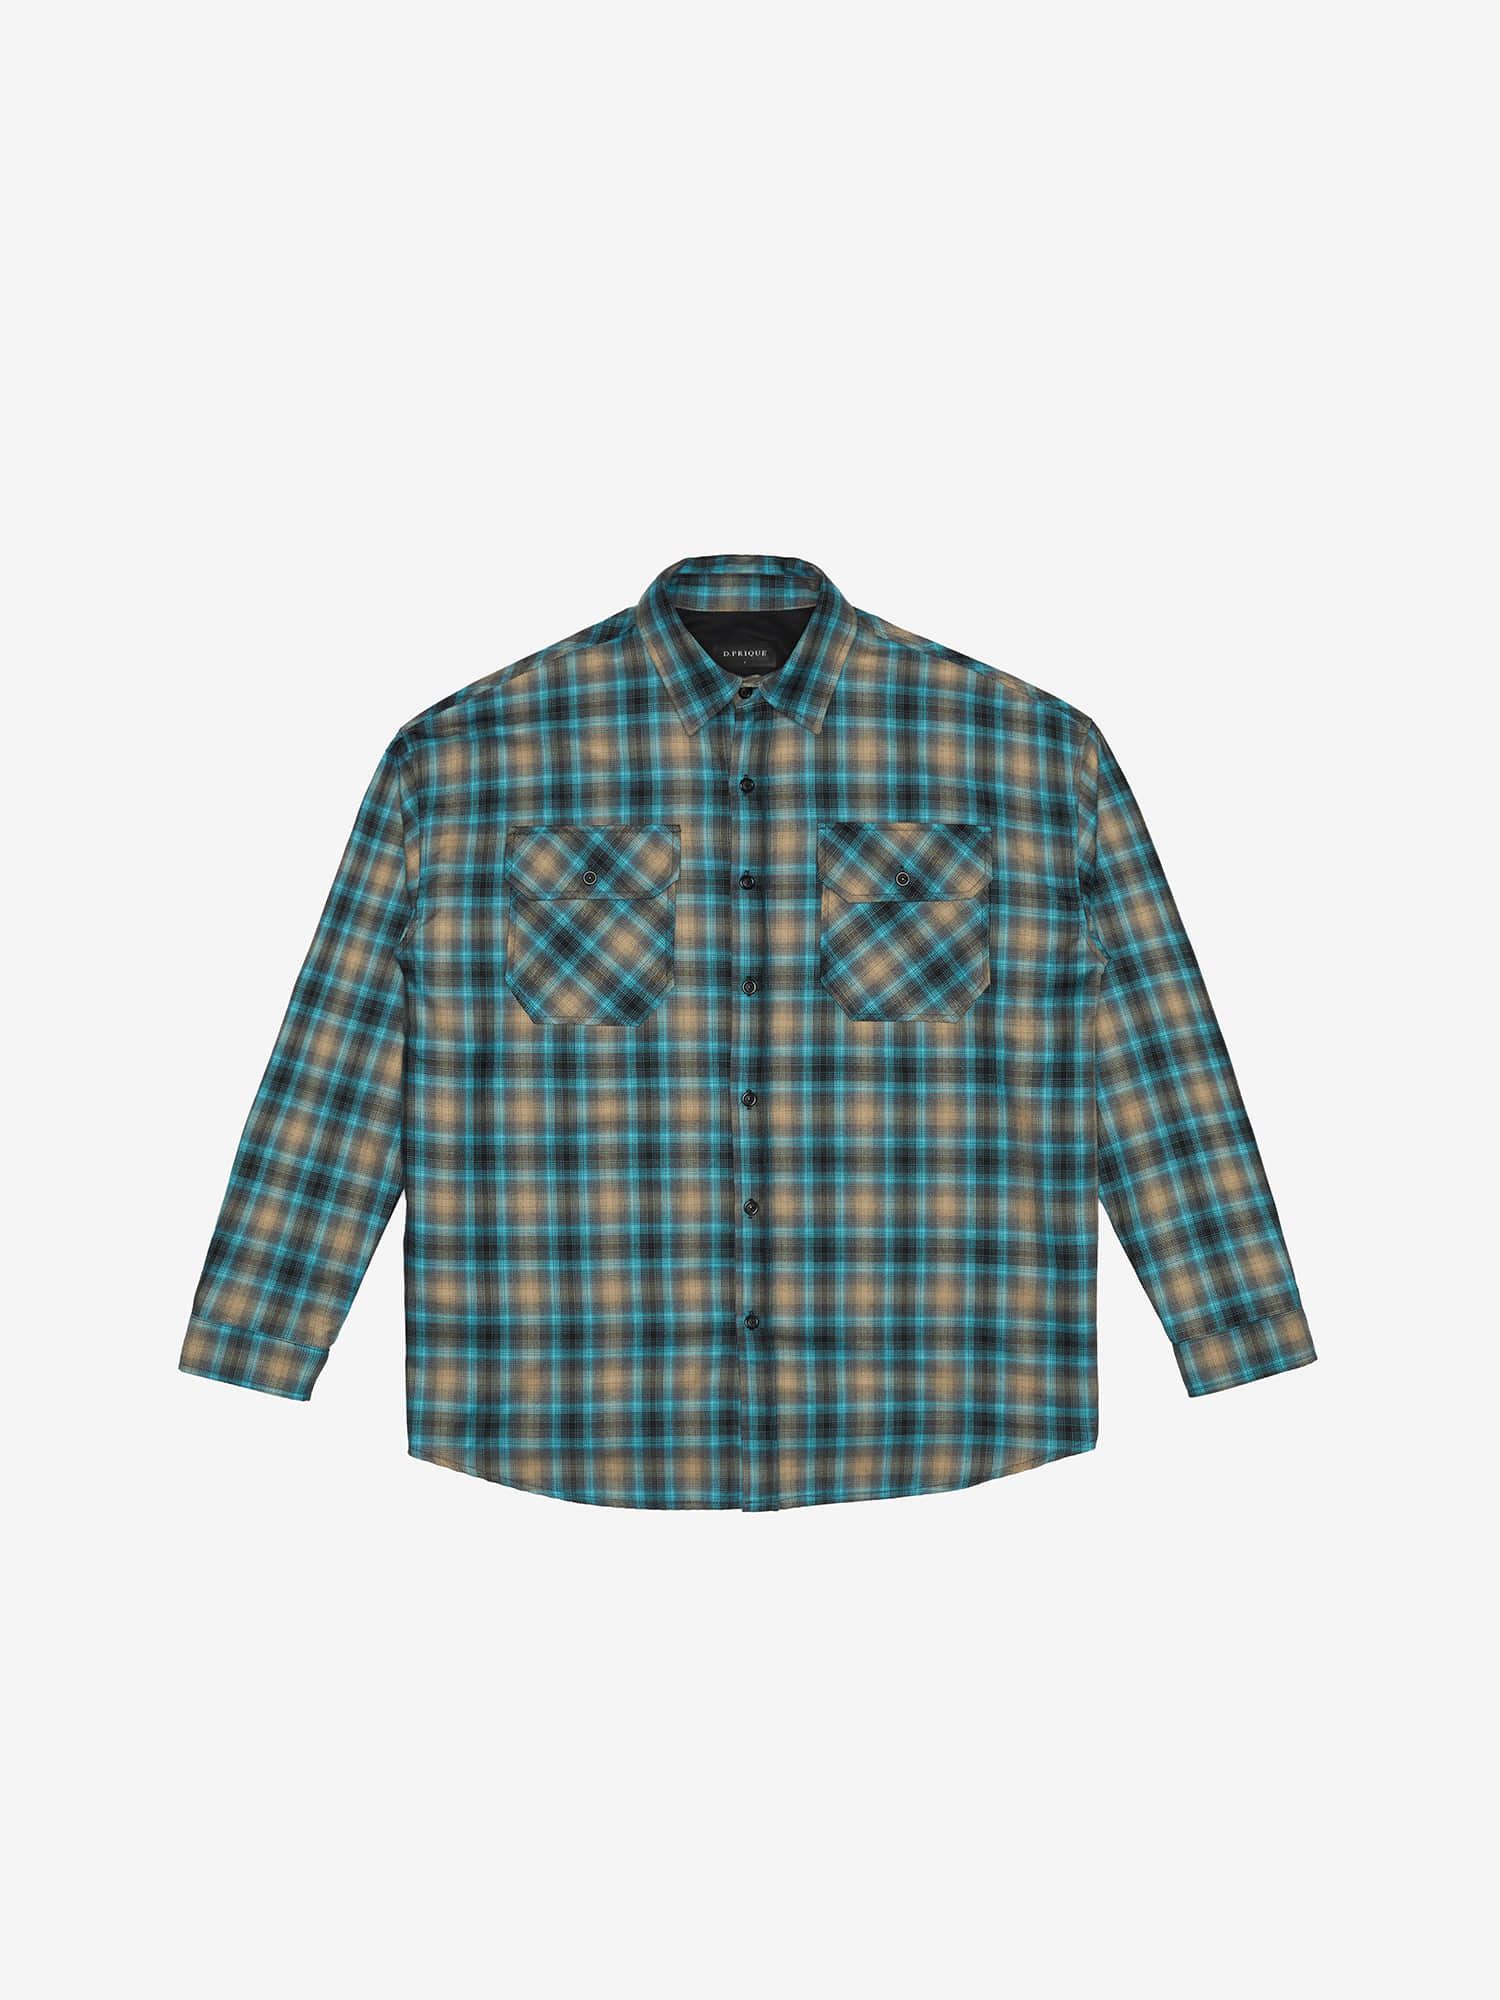 OVERSIZED CHECK SHIRT - Blue/Beige